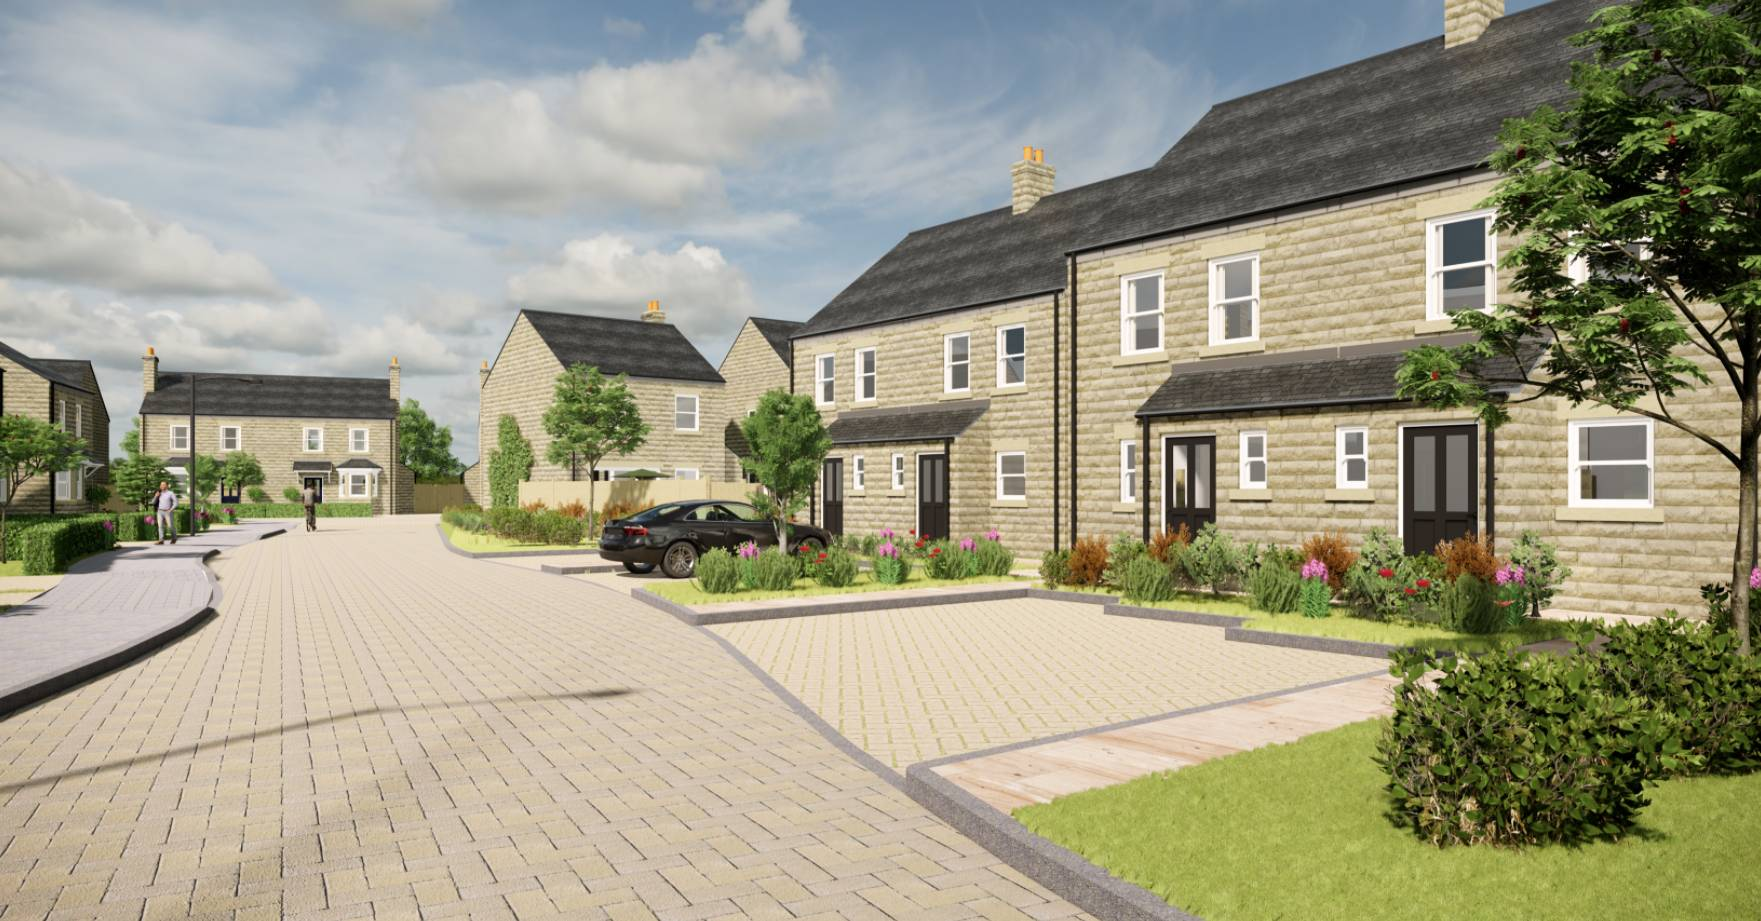 County council to build 20 homes in Pateley Bridge